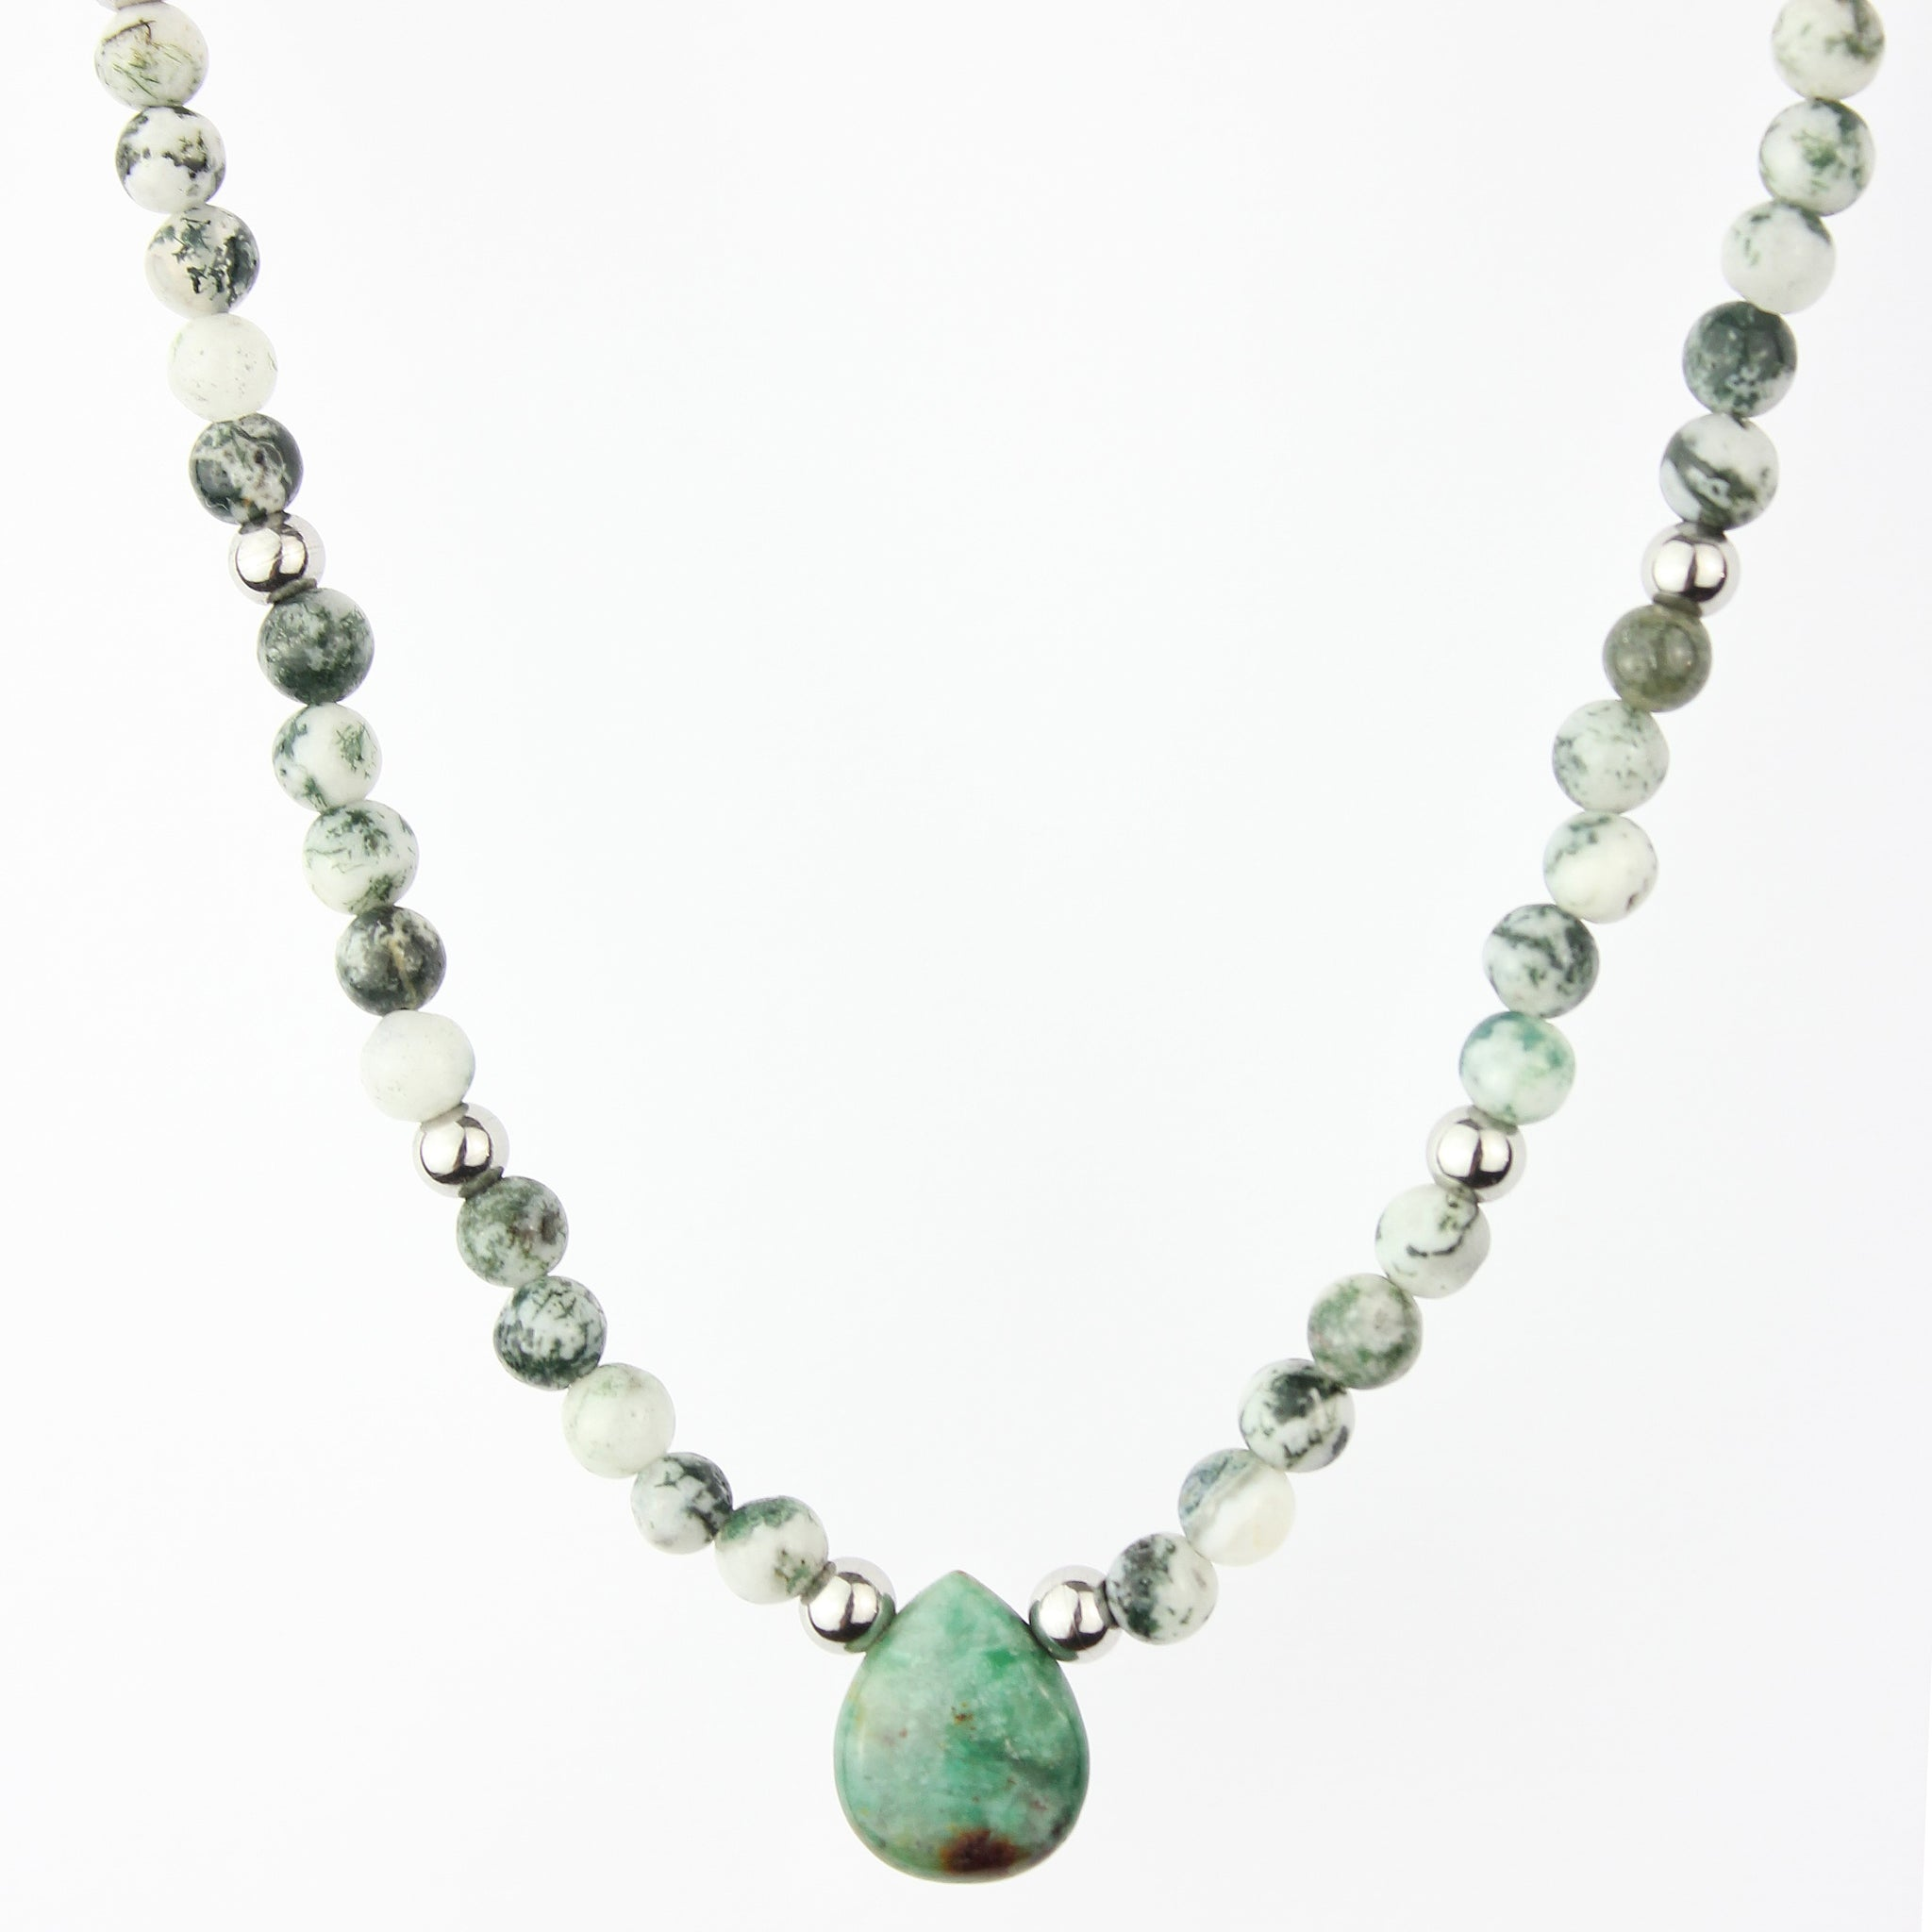 jade and edwardian necklace pearl shop seed century dsc twentieth